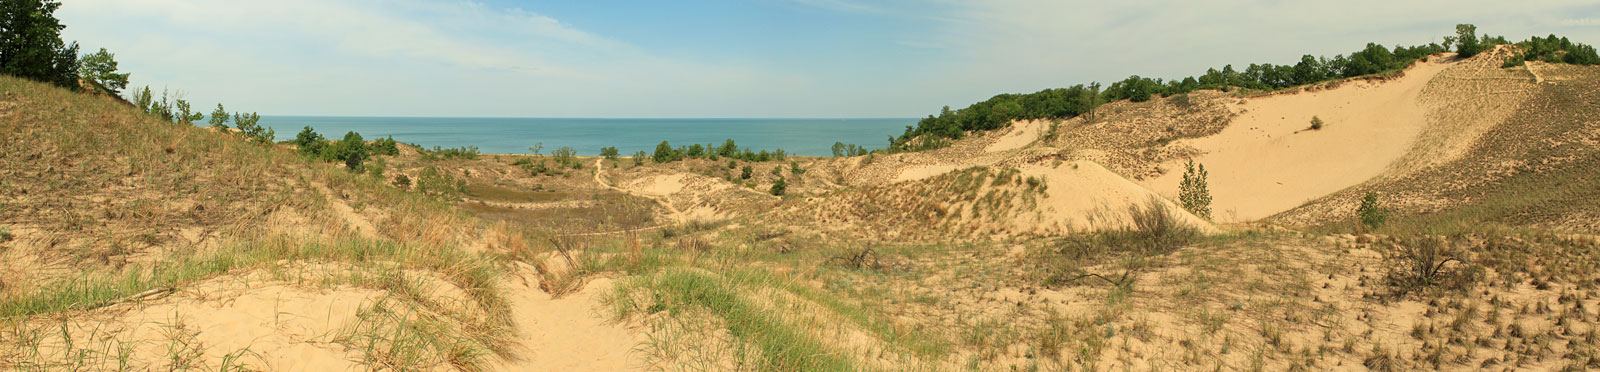 35-panoramic-dune-hike-warren-